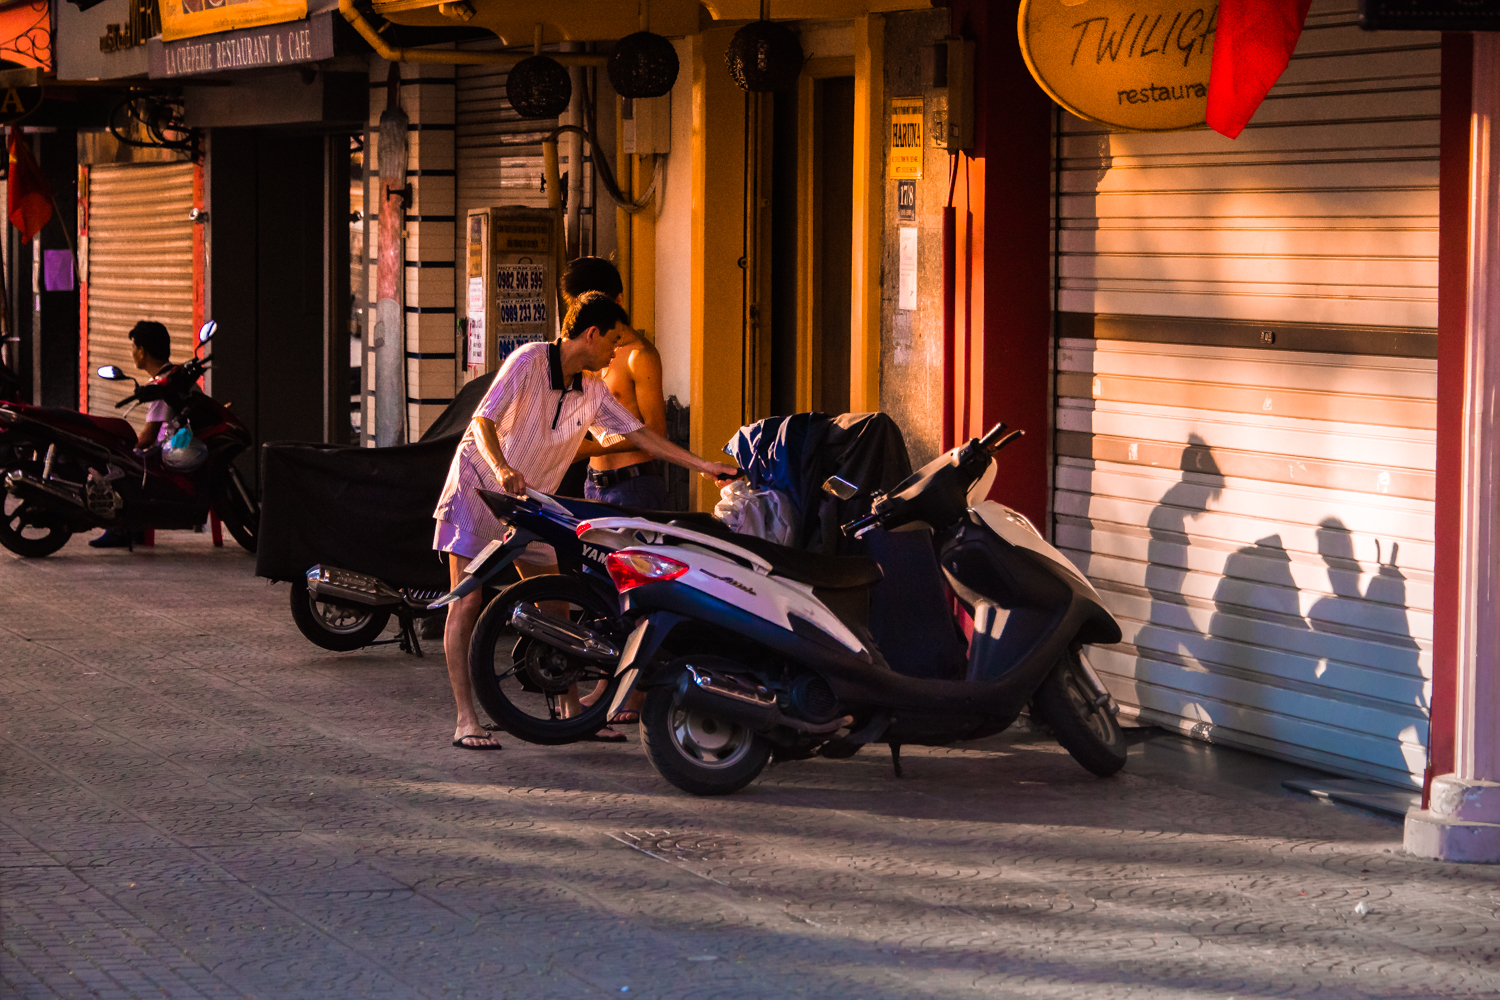 garybridgesphotography.com. Saigon Shadows at Twilight